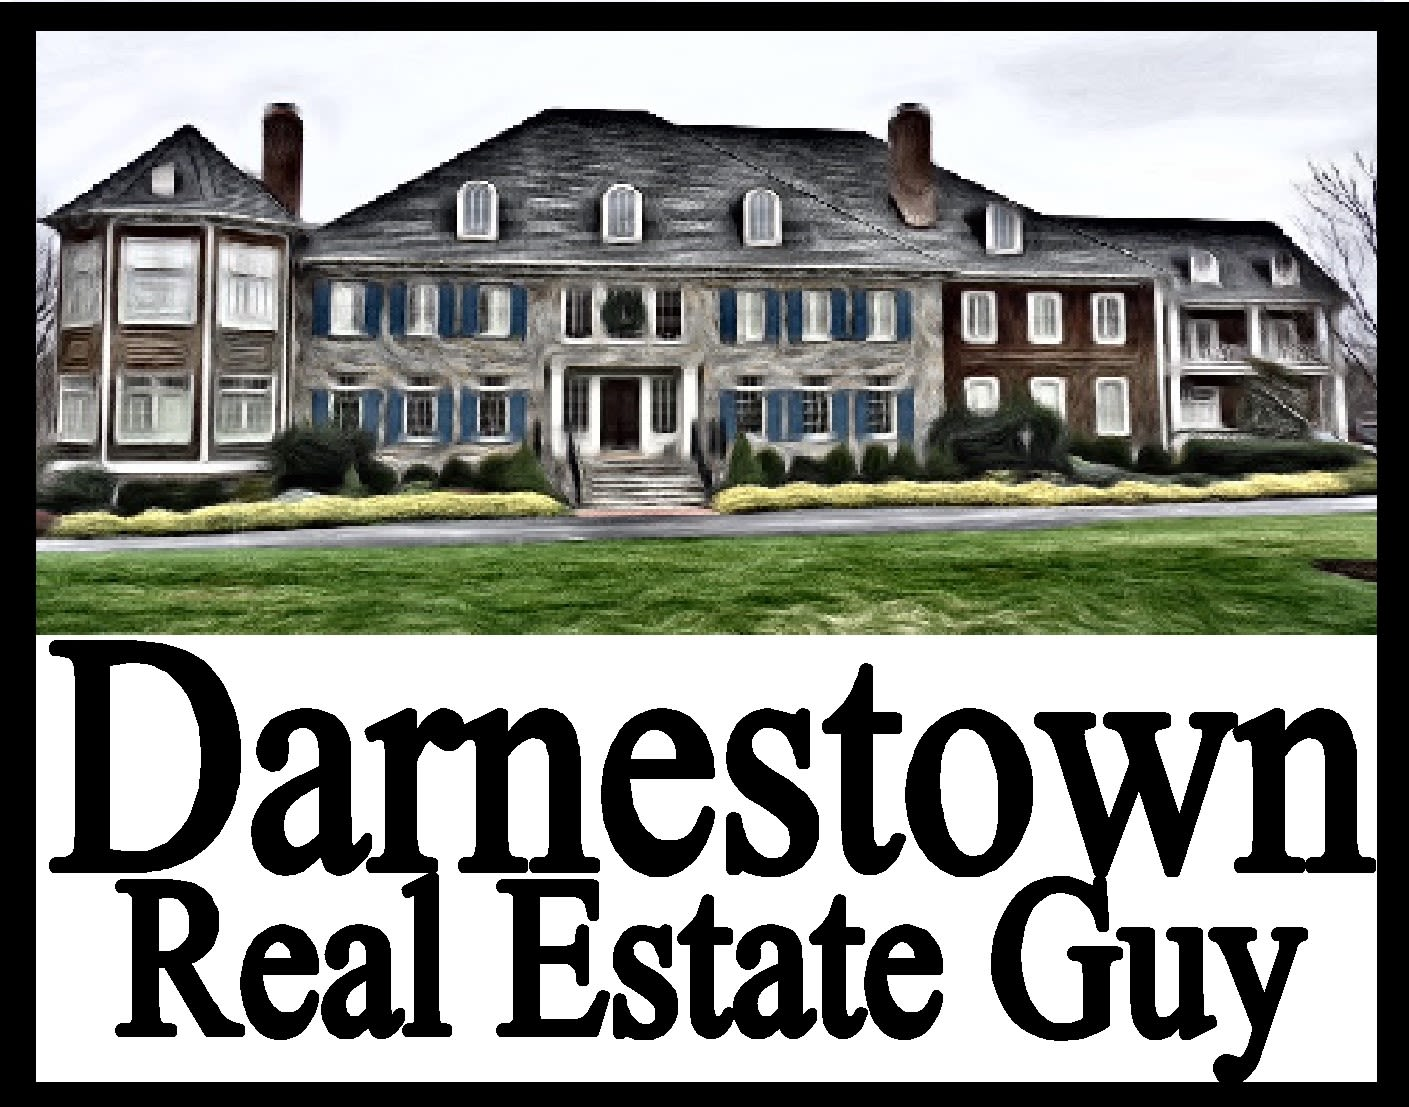 Darnestown Real Estate Guy